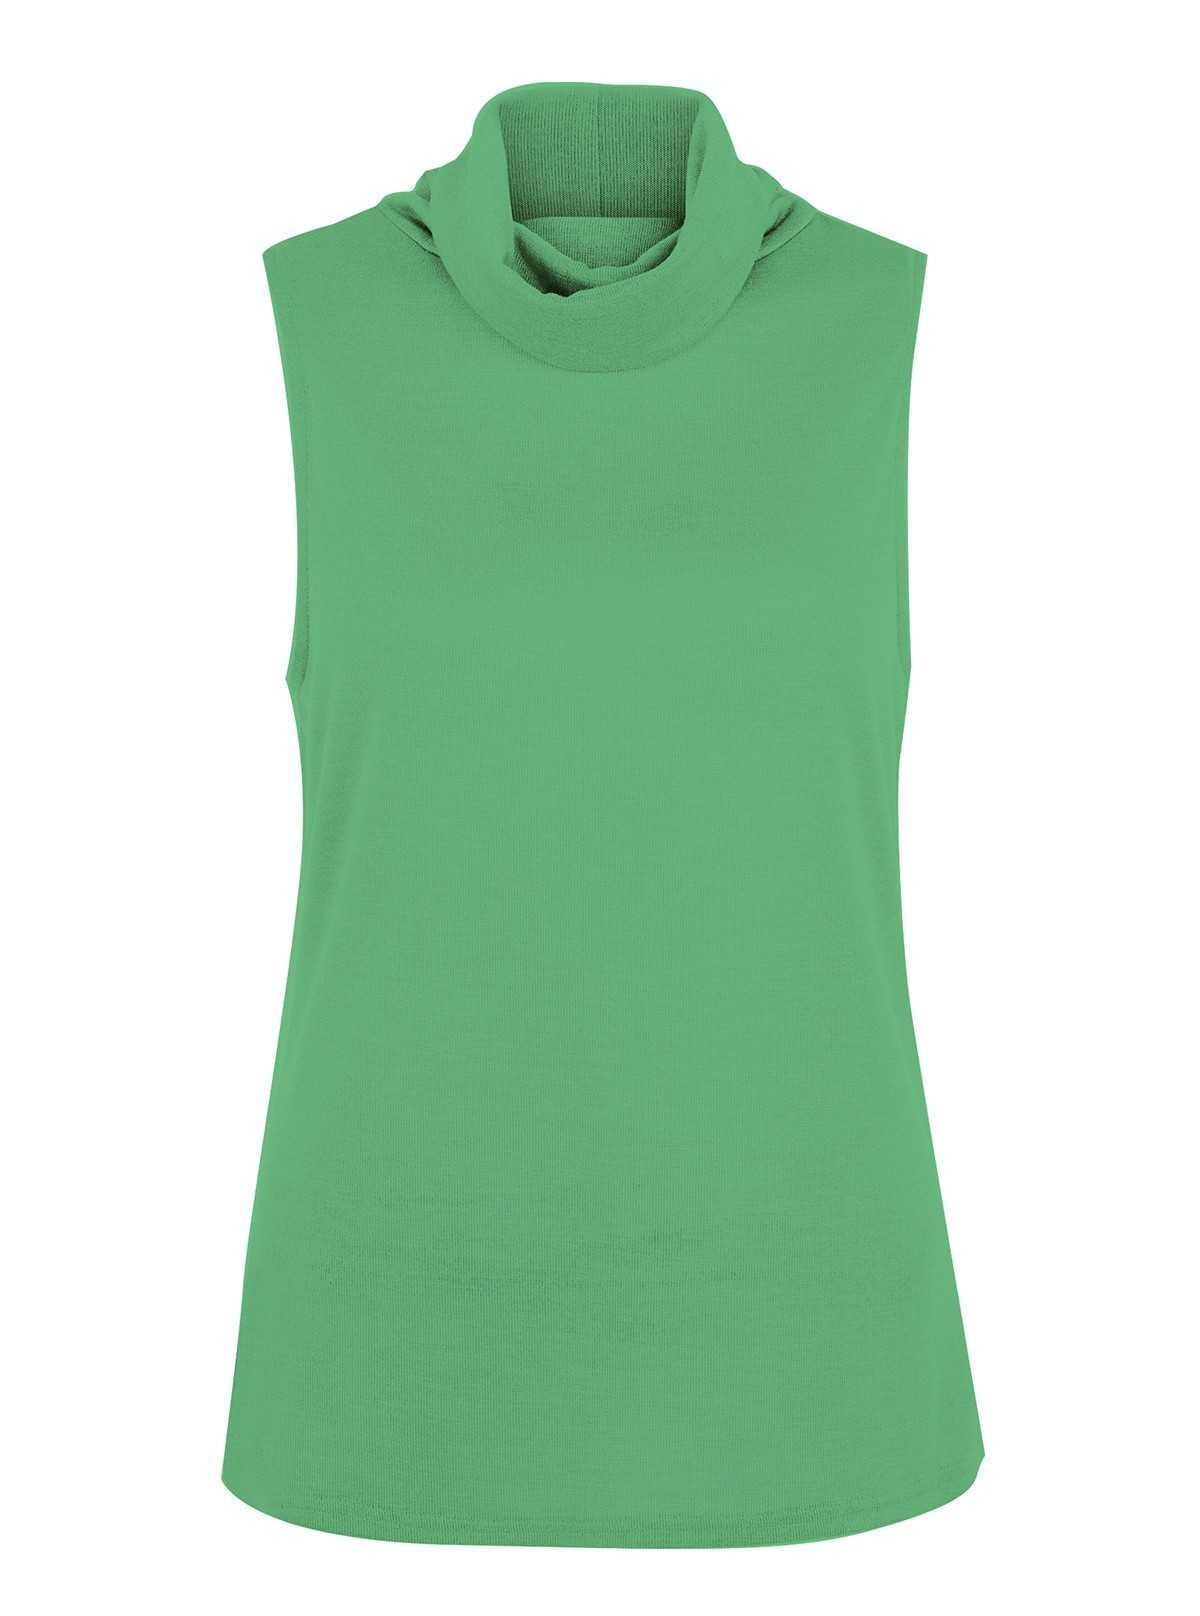 Green Roll On Neck Sleeveless Top